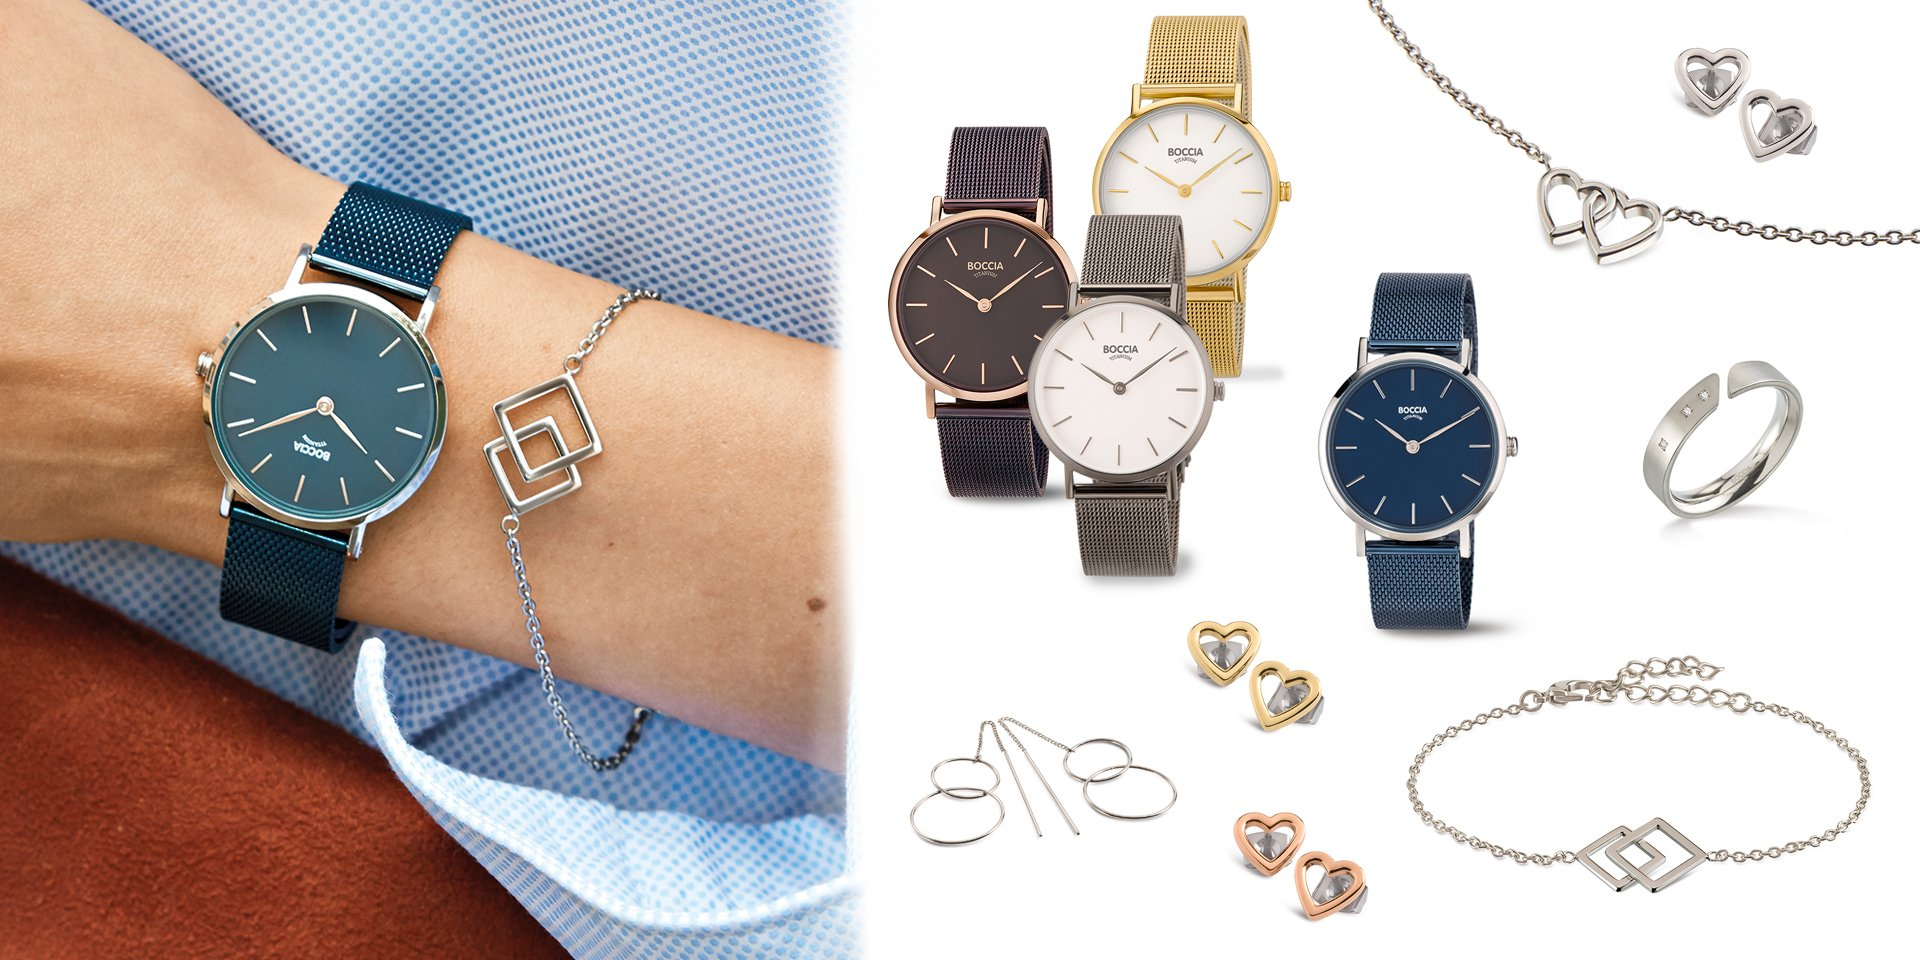 Boccia Titanium Jewelry and Watches